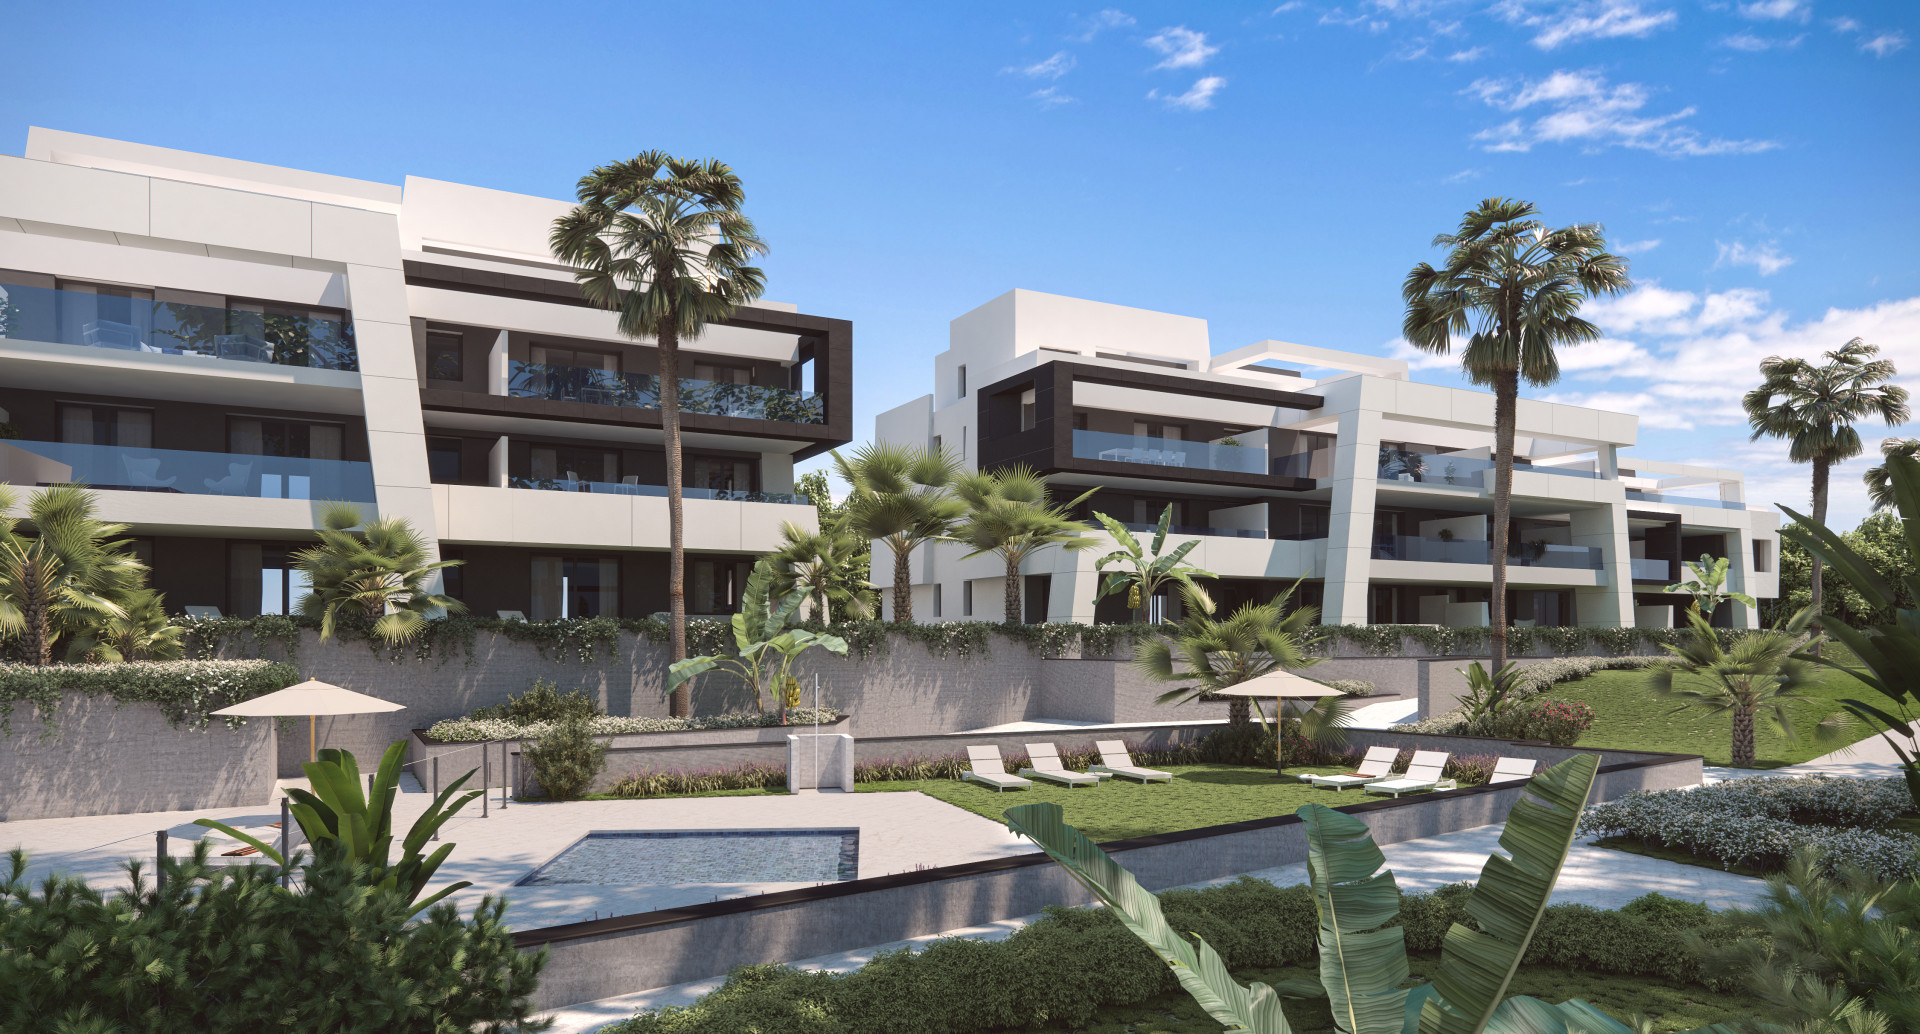 Moderne appartementen op de New Golden Mile Estepona